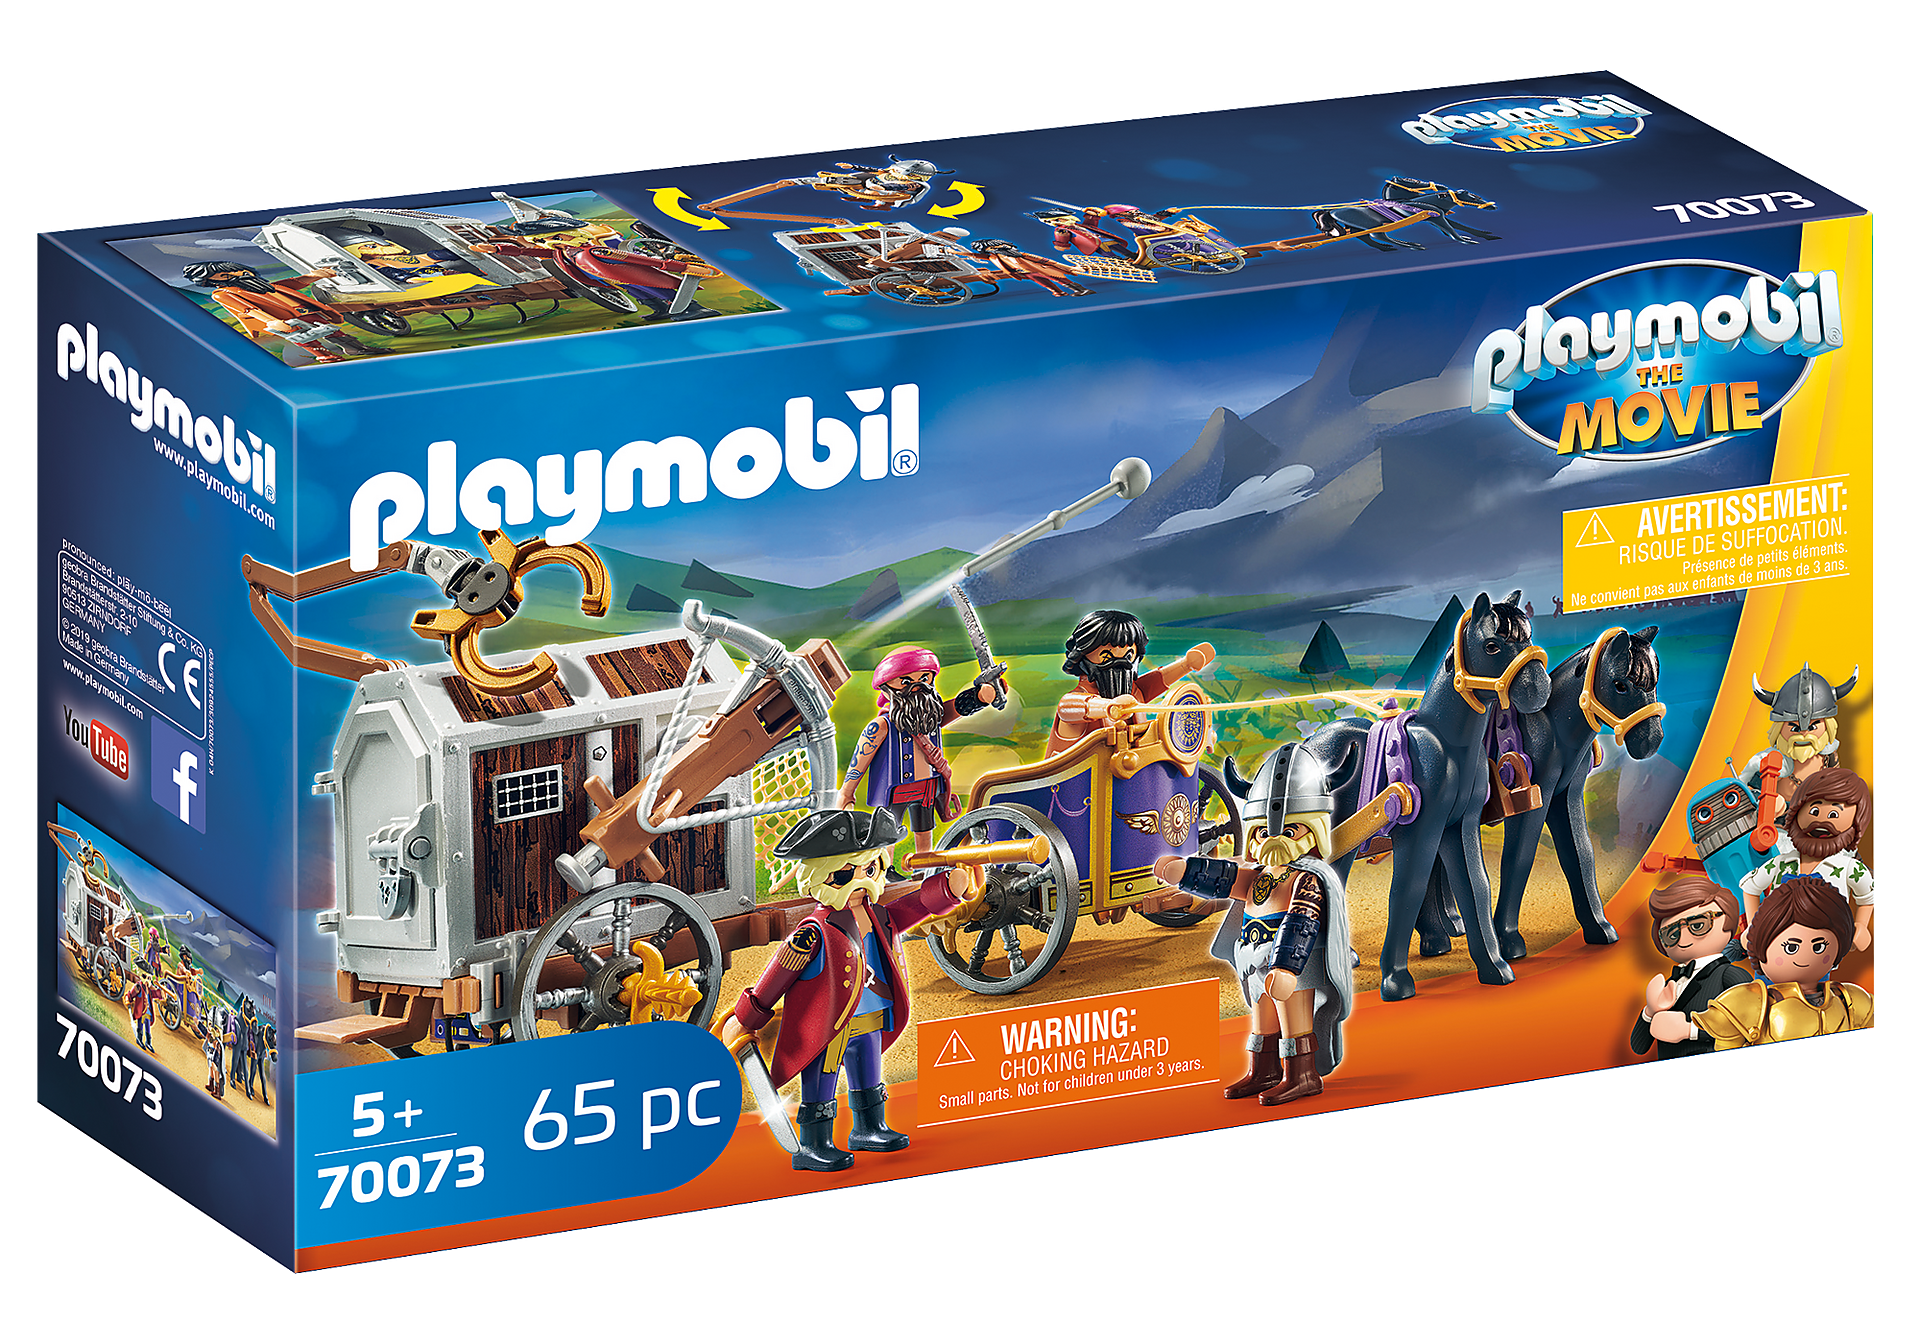 http://media.playmobil.com/i/playmobil/70073_product_box_front/PLAYMOBIL: THE MOVIE Charlie avec convoi de prison